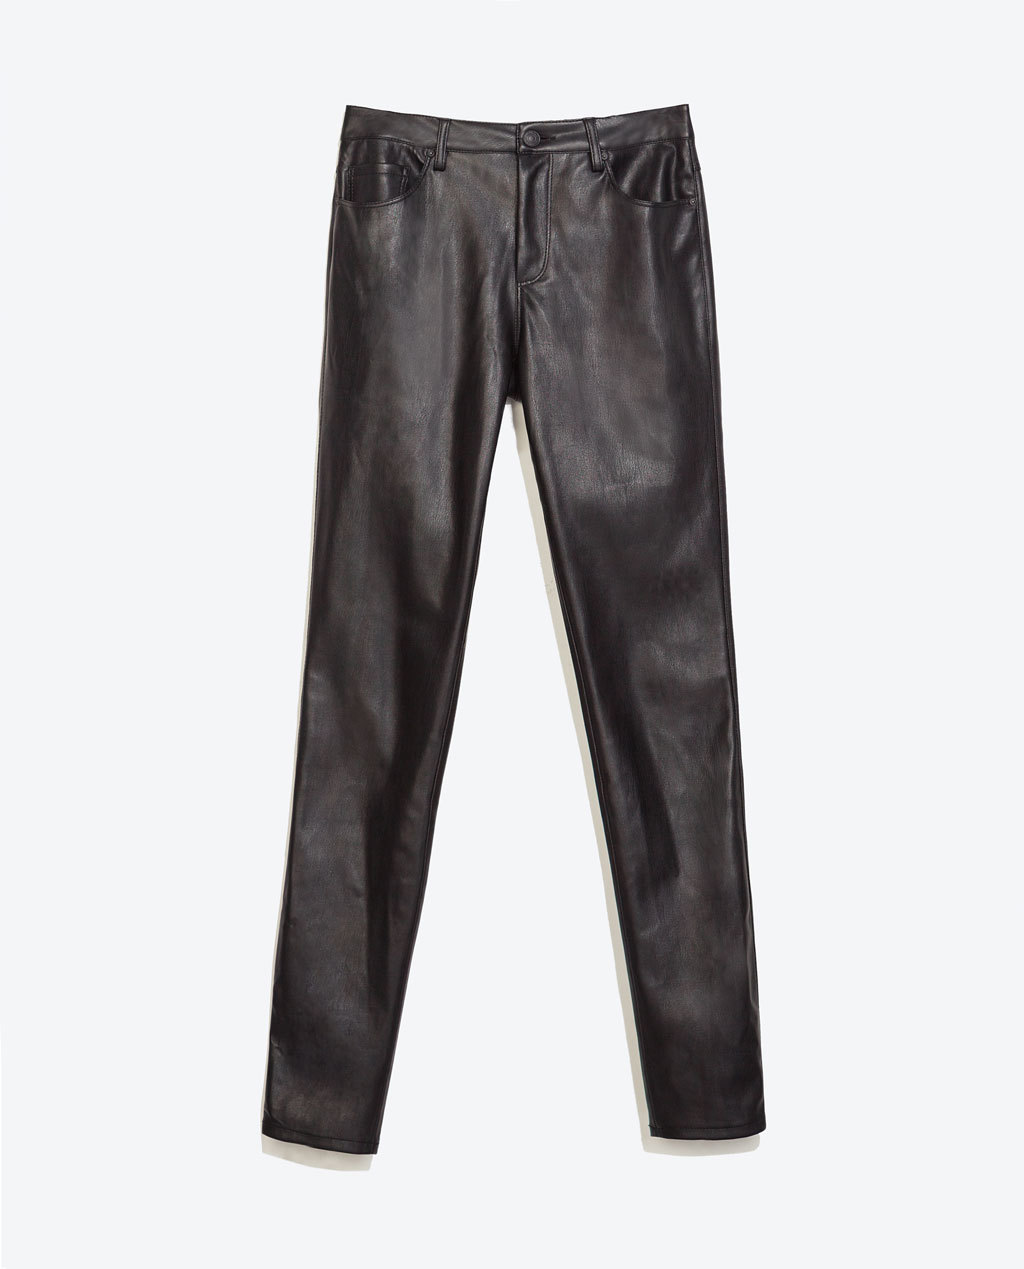 Faux Leather Skinny Jeans - style: skinny leg; length: standard; pattern: plain; waist: low rise; pocket detail: traditional 5 pocket; predominant colour: black; occasions: casual, evening, creative work; fibres: polyester/polyamide - stretch; texture group: leather; pattern type: fabric; season: a/w 2014